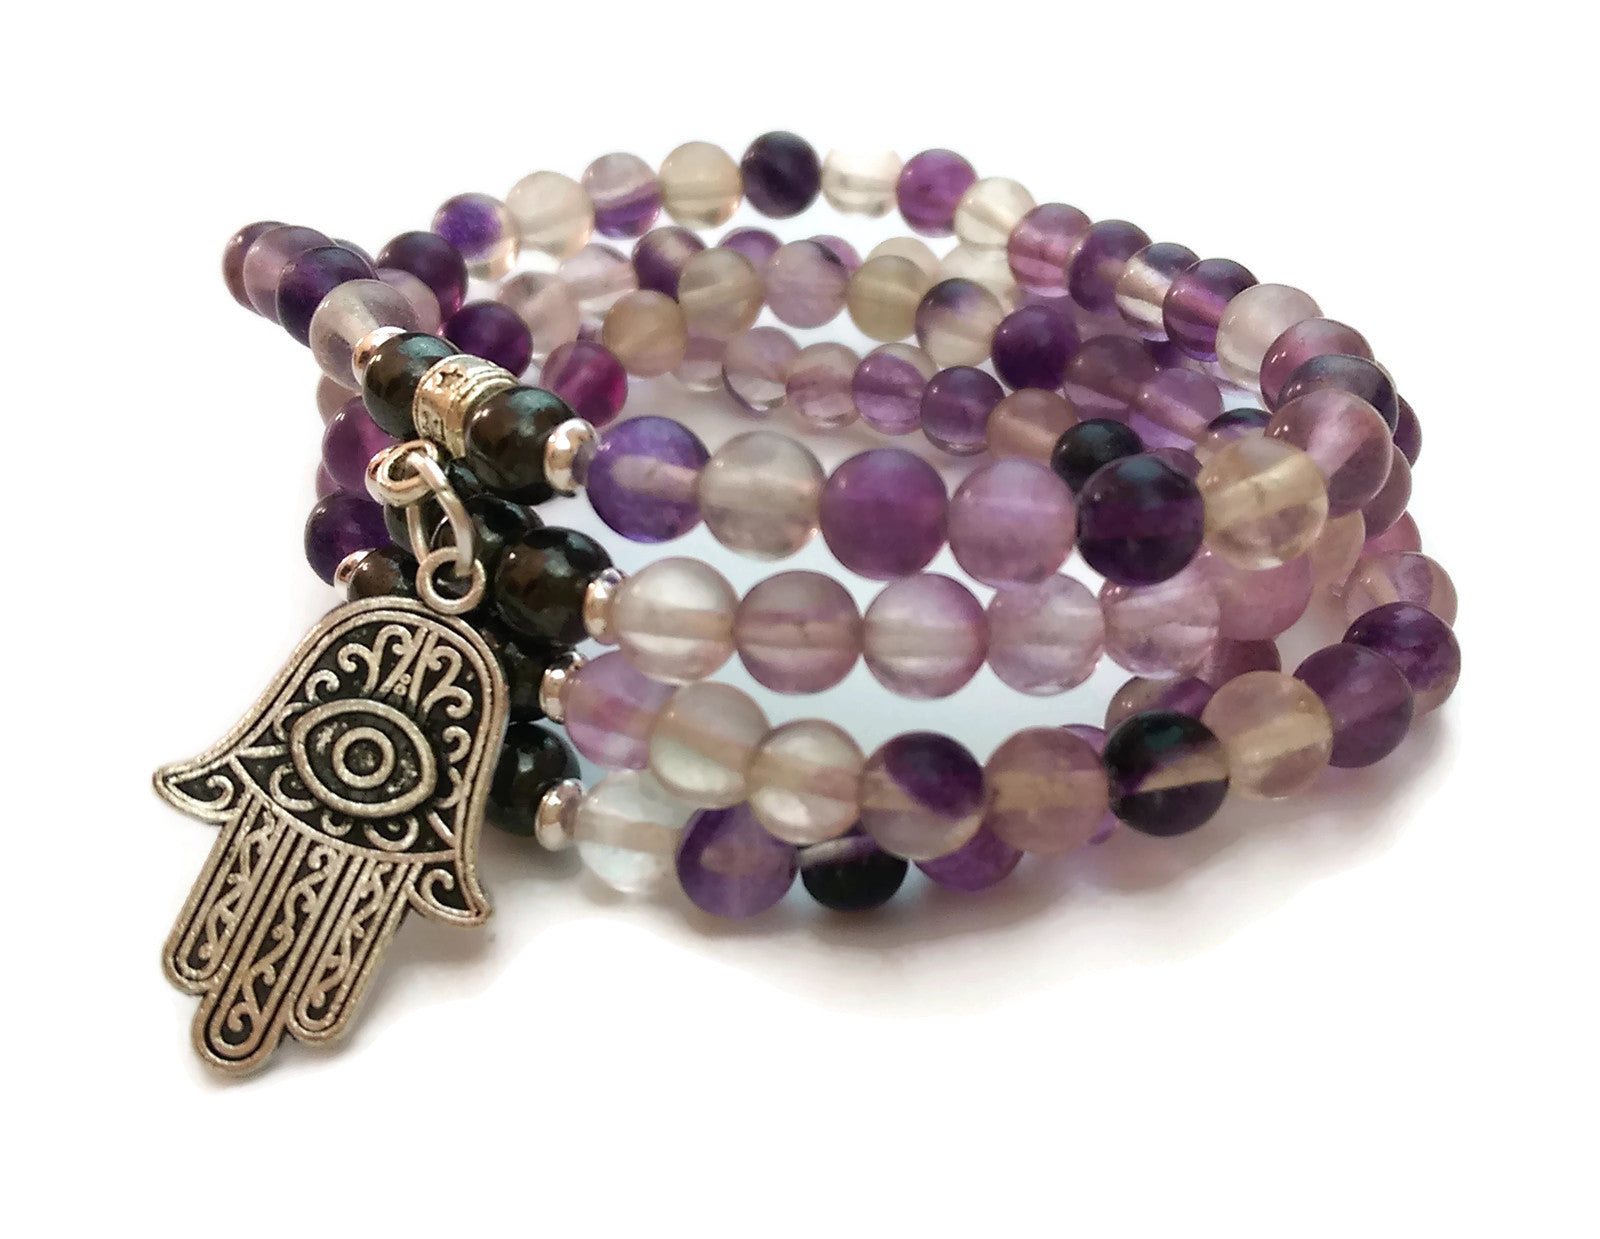 6mm Fluorite and Hematite with 925 Silver Wrist Wrap Mala Bracelet with Hamsa Charm